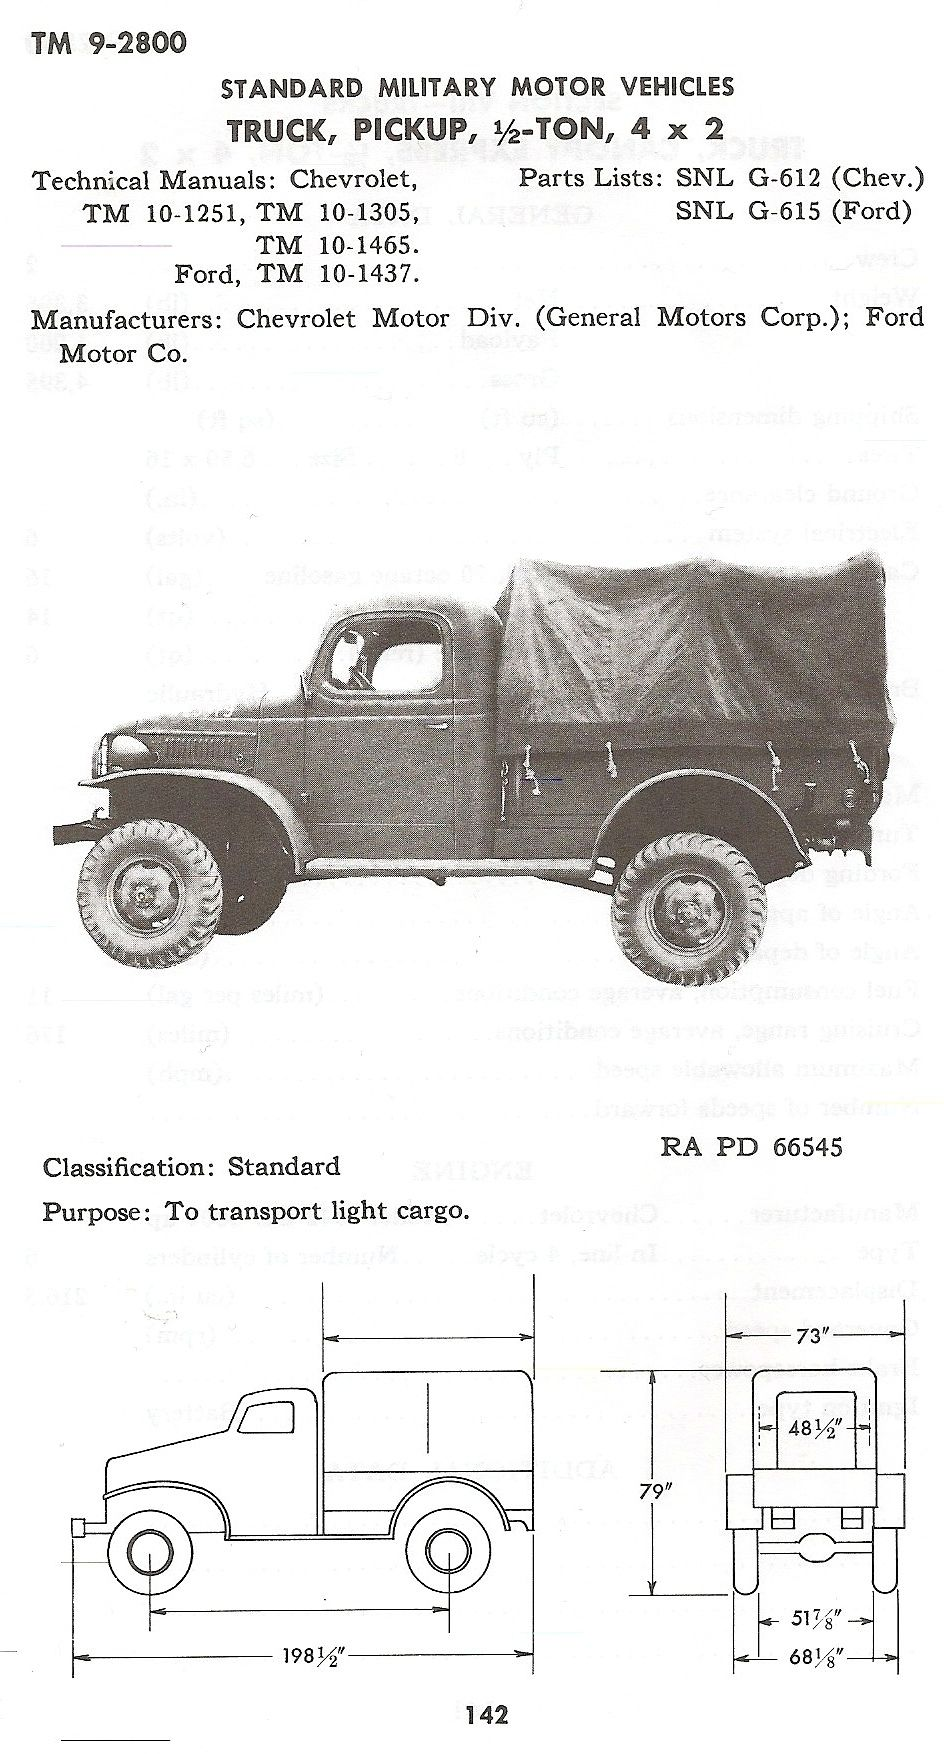 G612 Chevy 1 2 Ton Truck From Tm 9 2800 Standard Military Motor